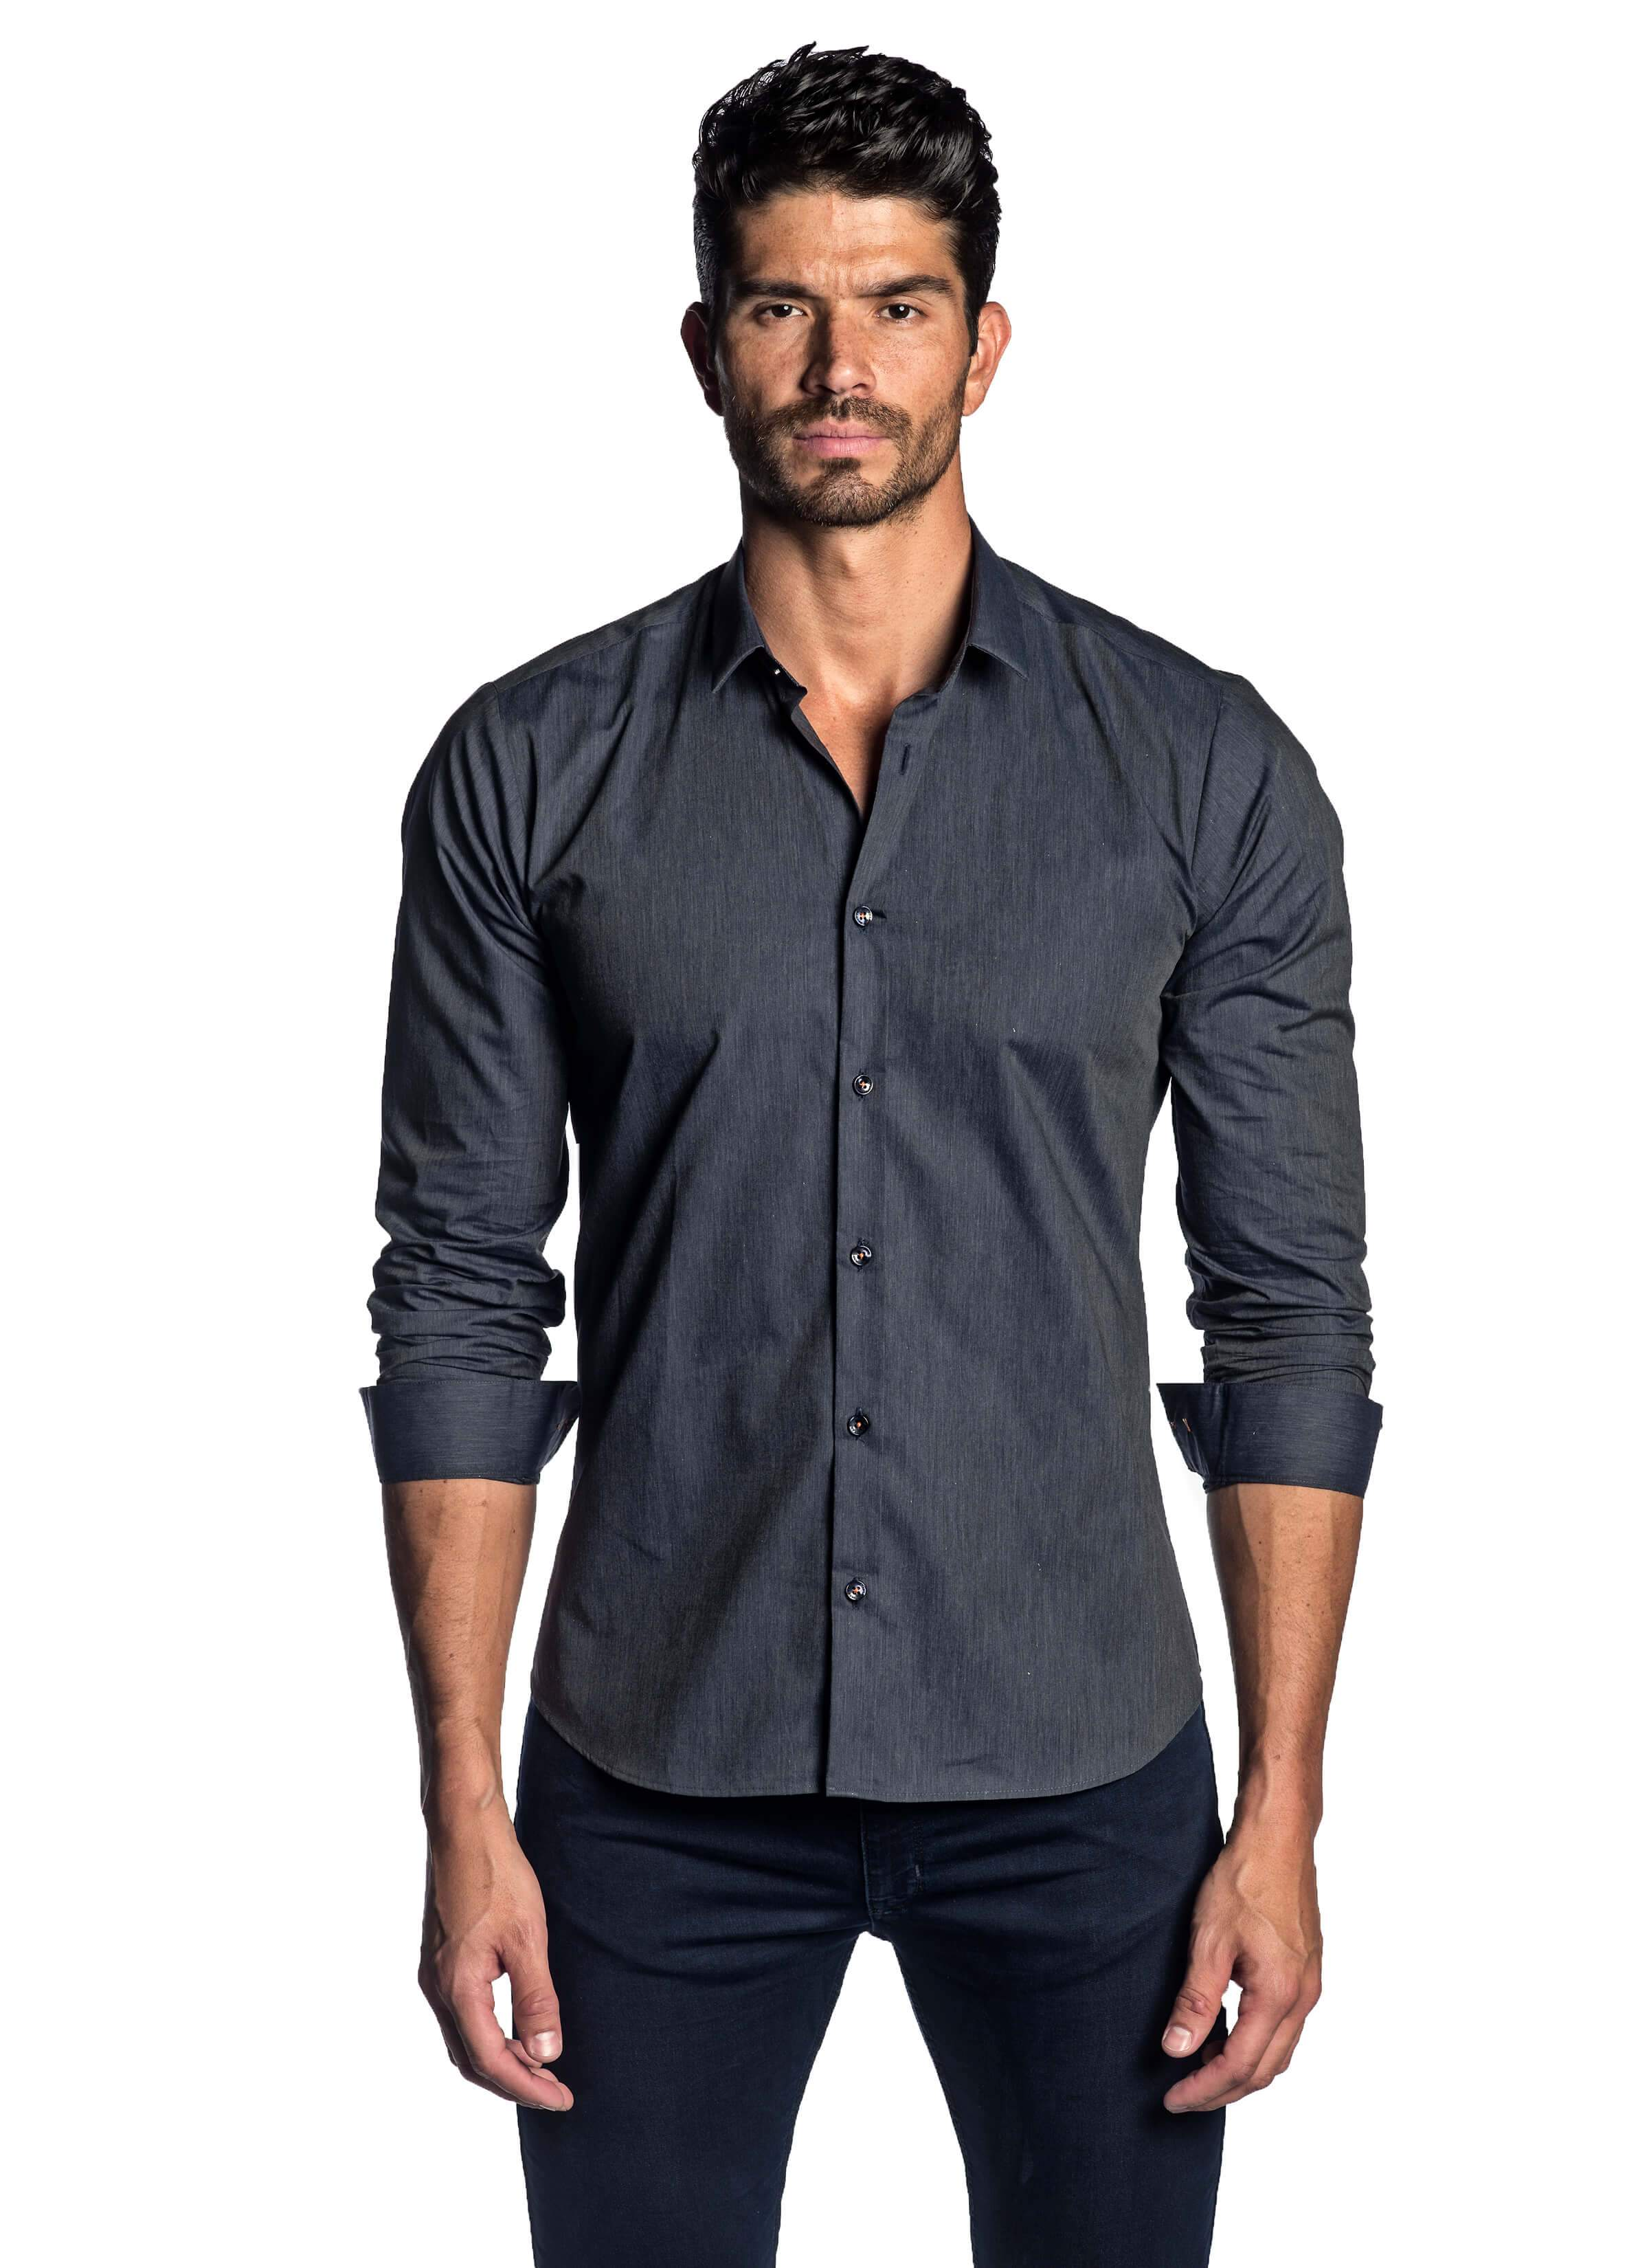 Dark Blue Chambre Solid Shirt for Men AH-T-2043